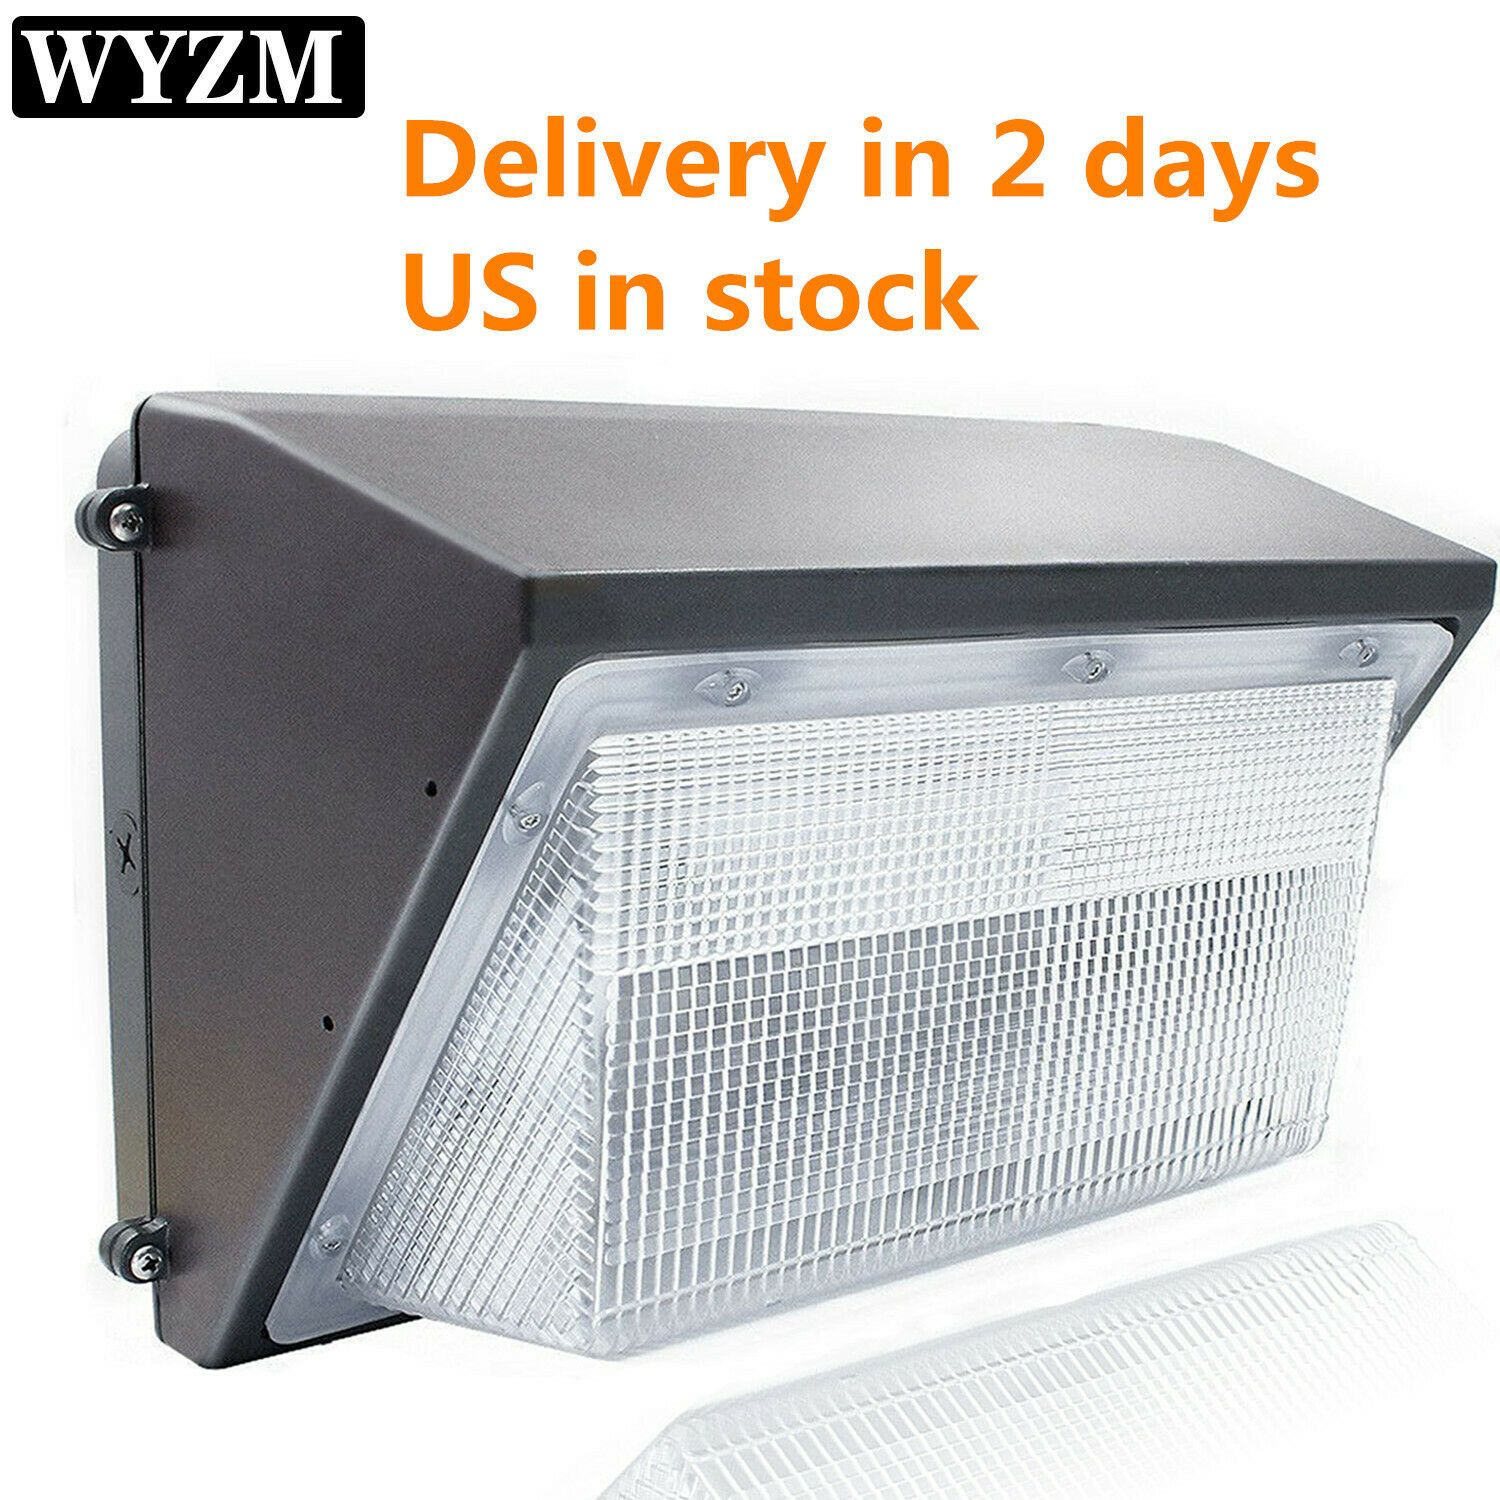 70w 125w Led Wall Pack Lights Dusk To Dawn Outdoor Garden Lamp 250 600w Equiv In 2020 Security Lights Dusk To Dawn Wall Packs